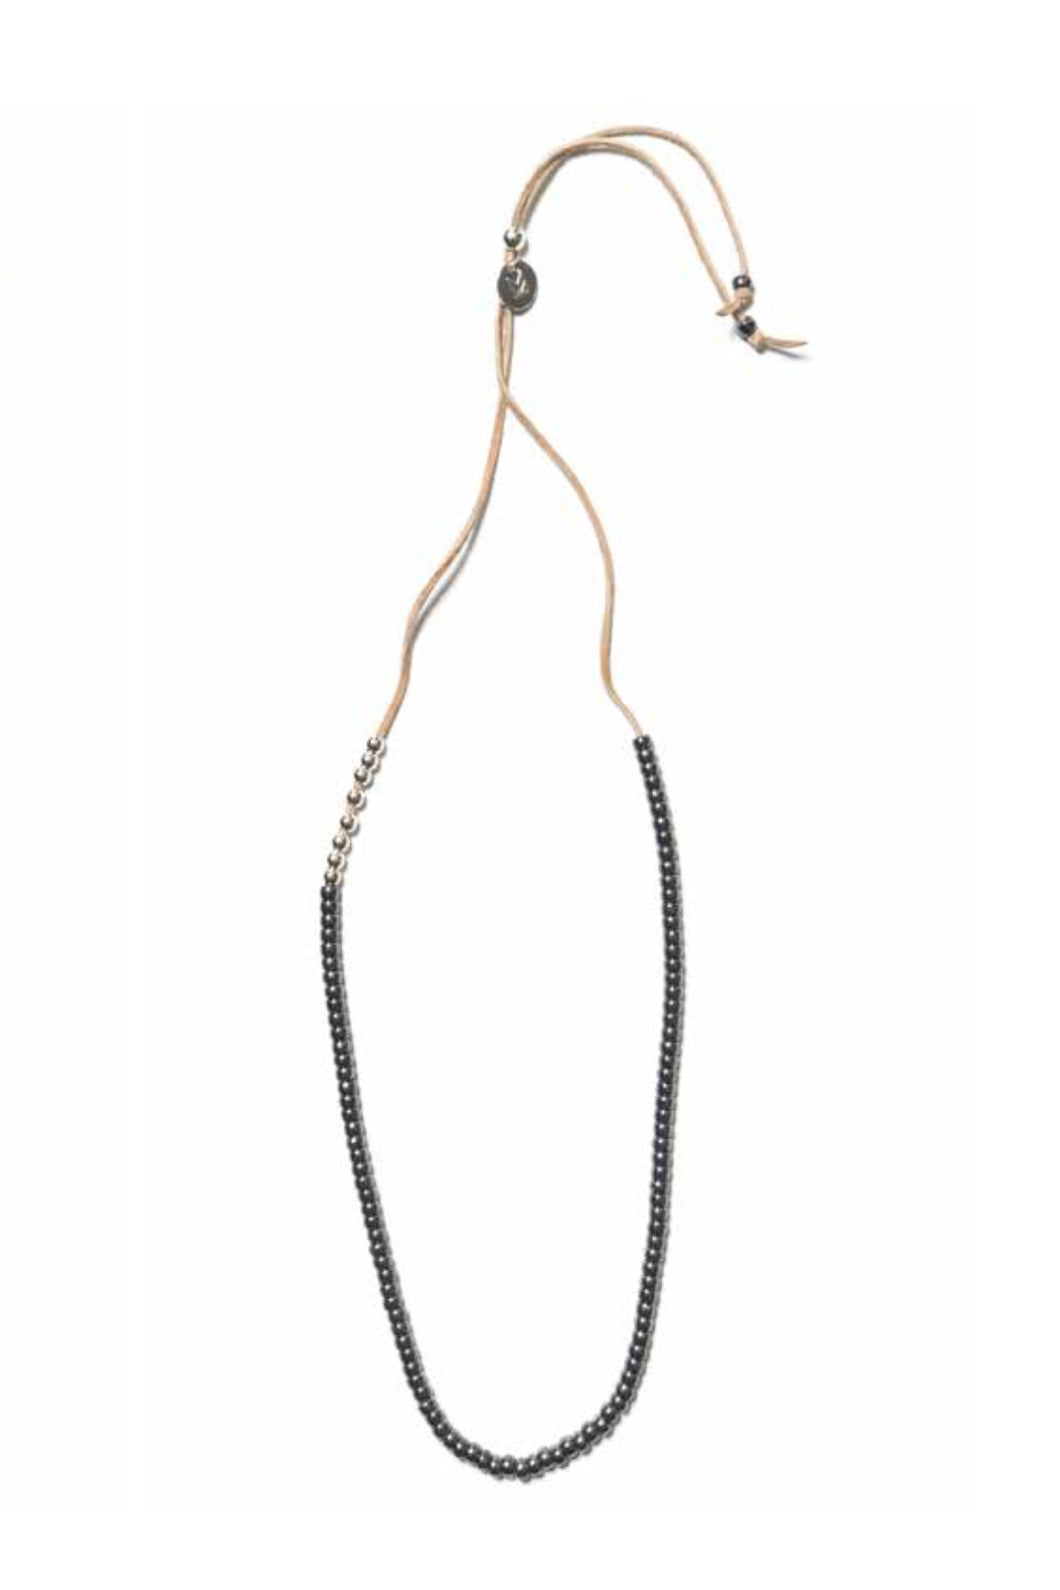 Maple - pacific necklace - charcoal